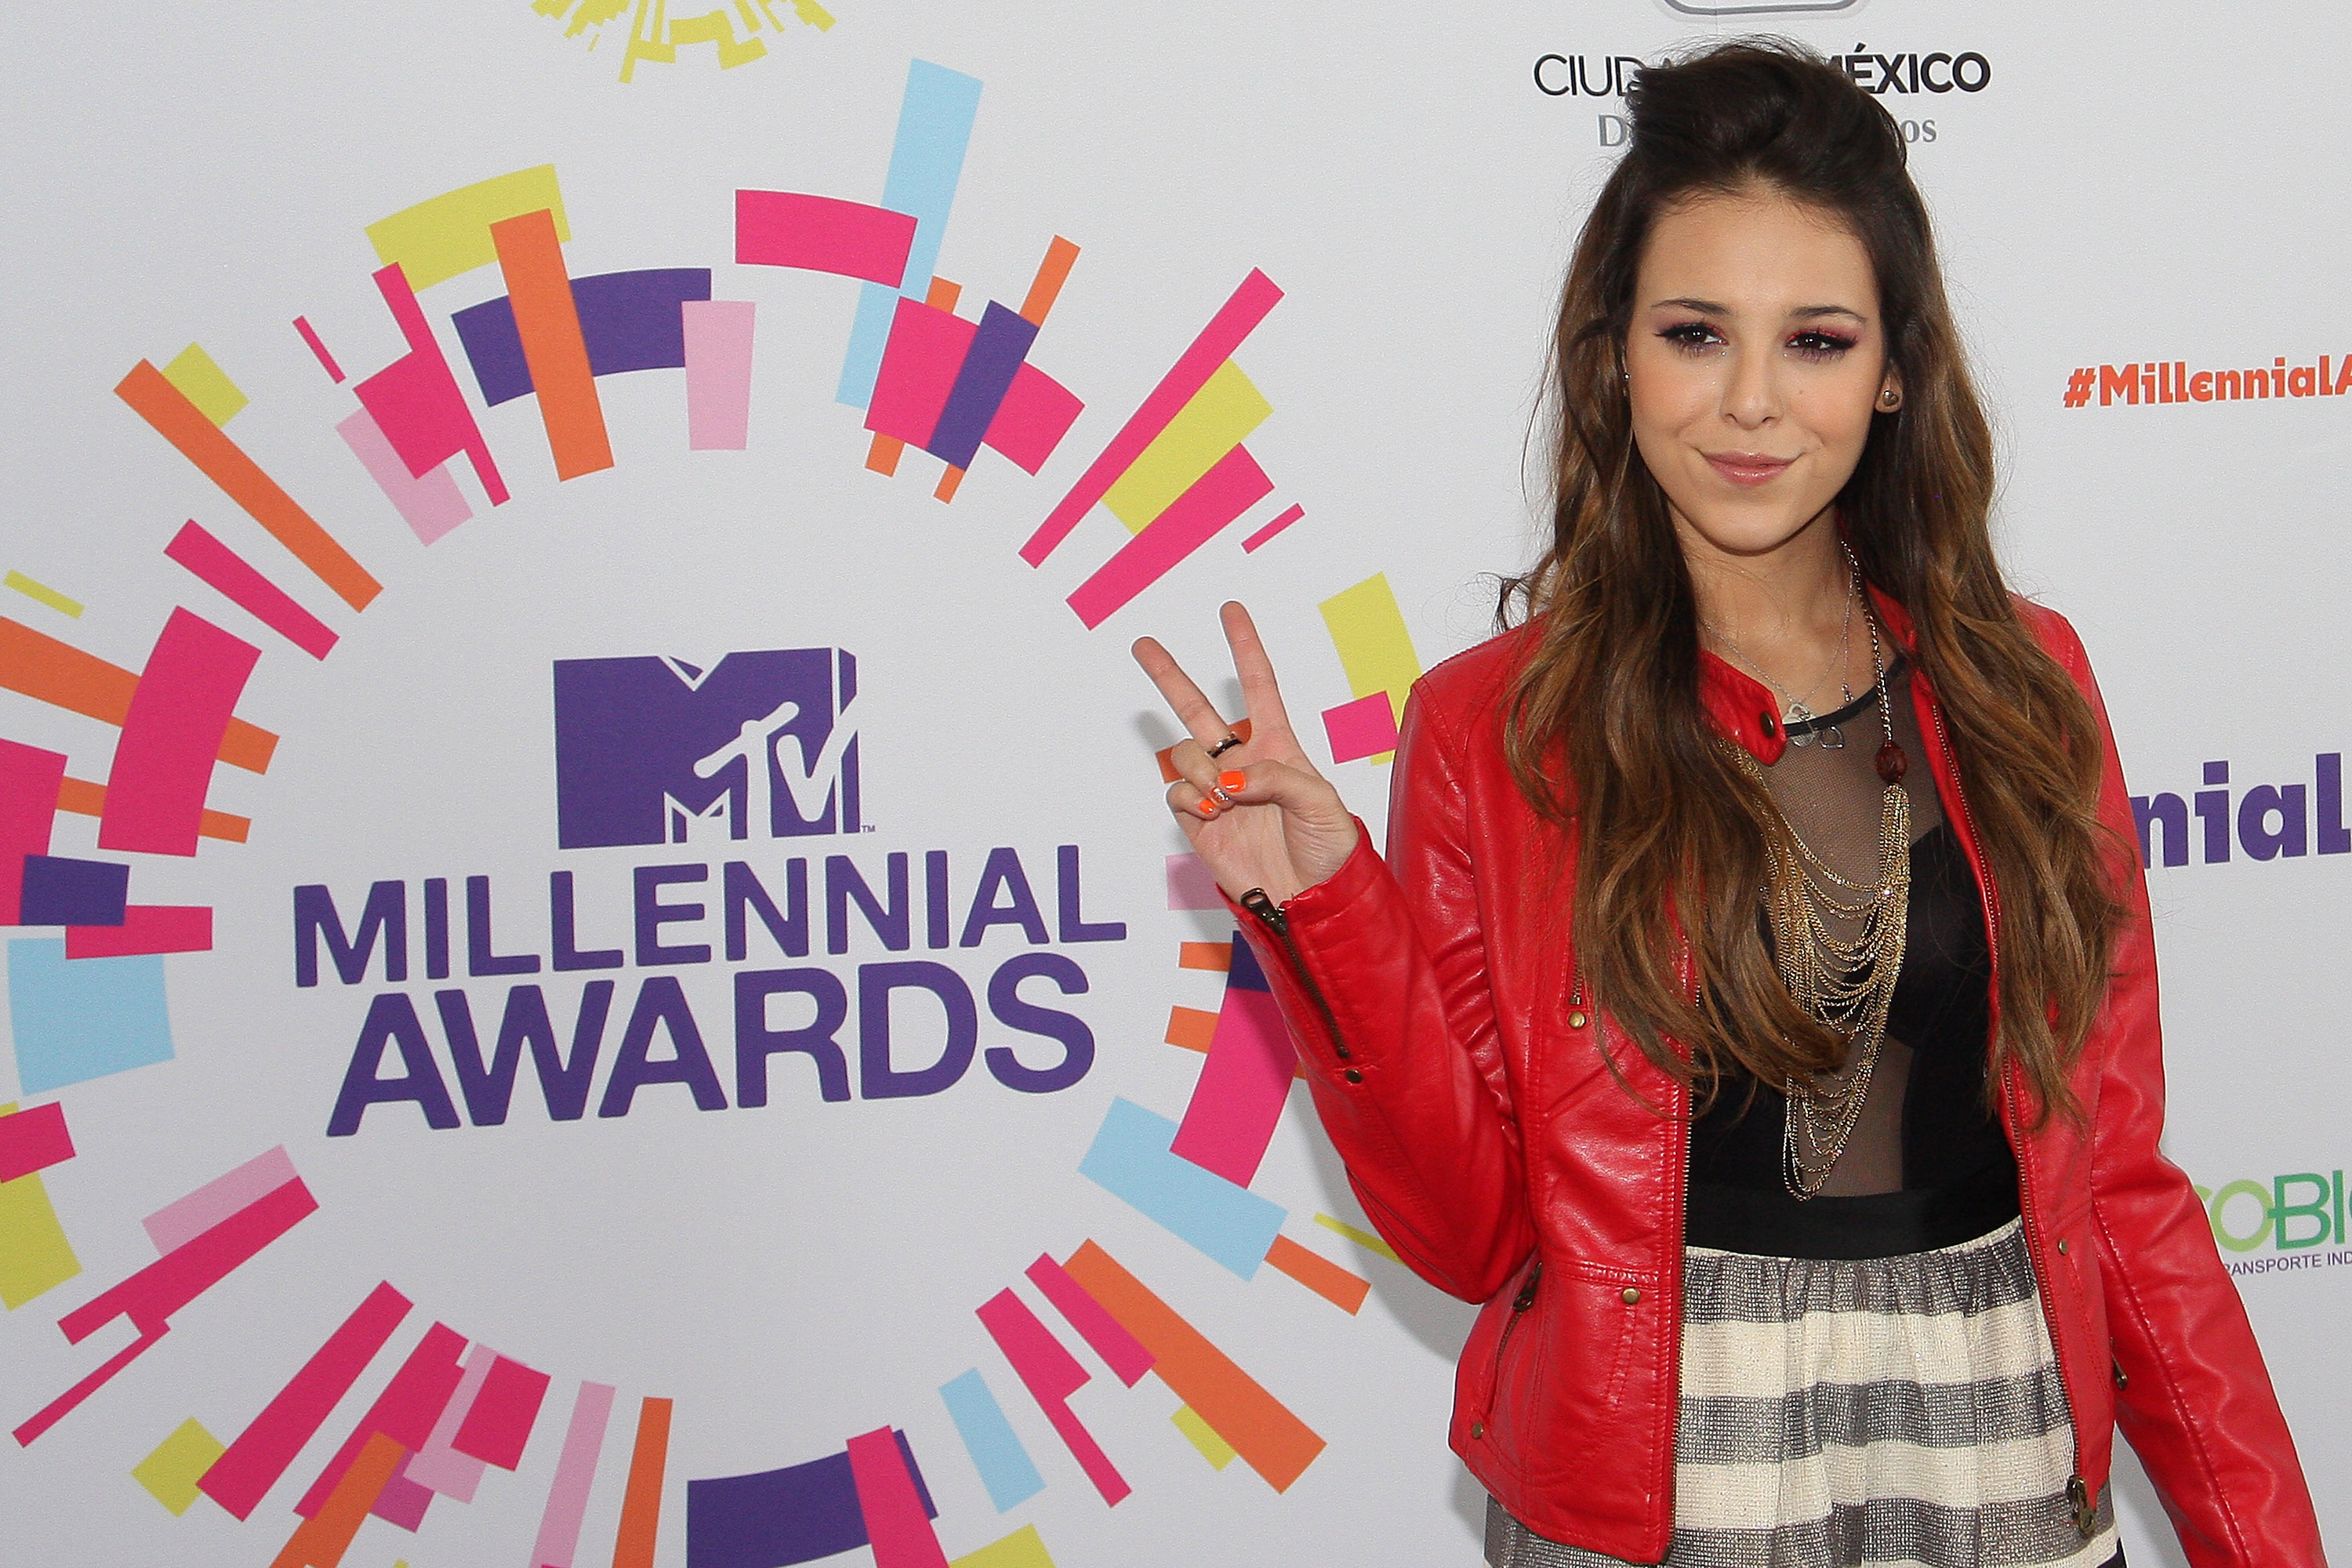 MTV Millenial Awards 2013